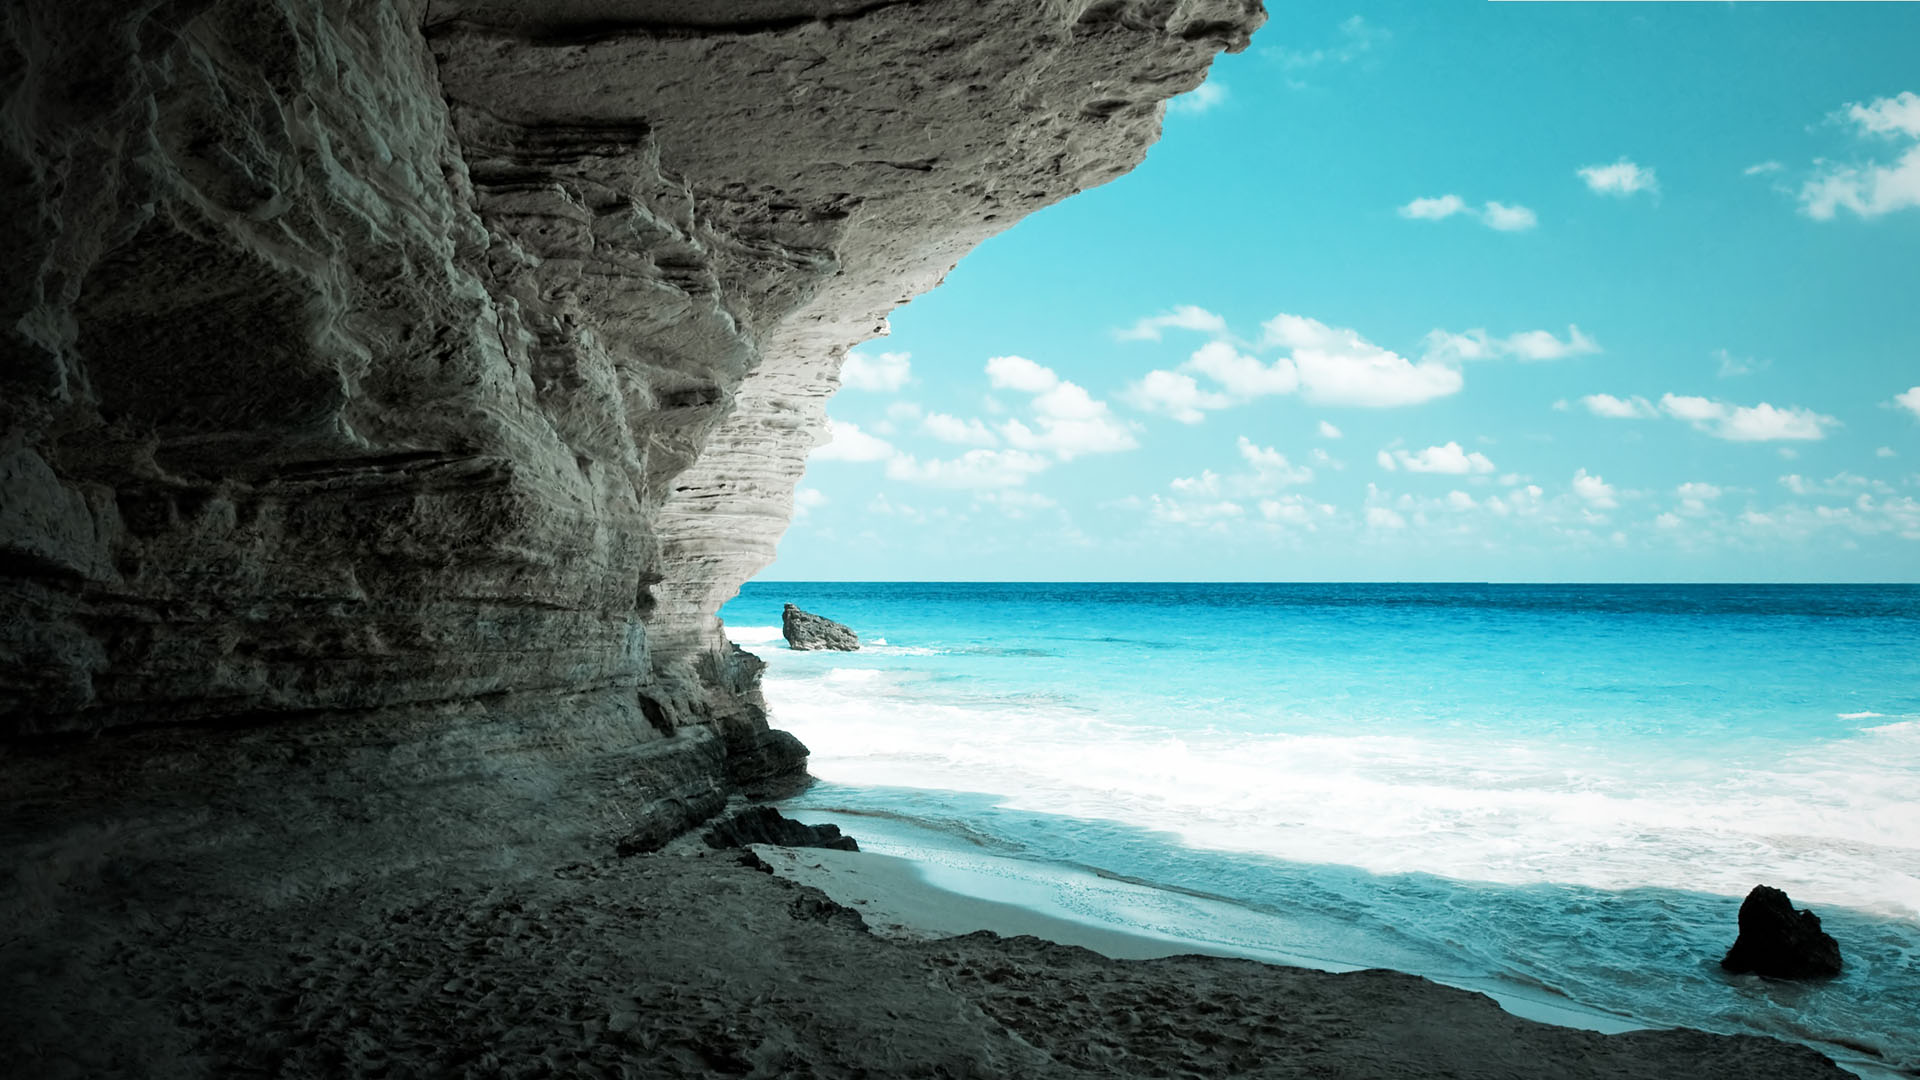 Free Download Amazing Full Hd Wallpaper Cave On The Beach Wallpaper 1920x1080 For Your Desktop Mobile Tablet Explore 50 Full Hd Wallpapers For Pc Free Wallpapers For Desktop Full